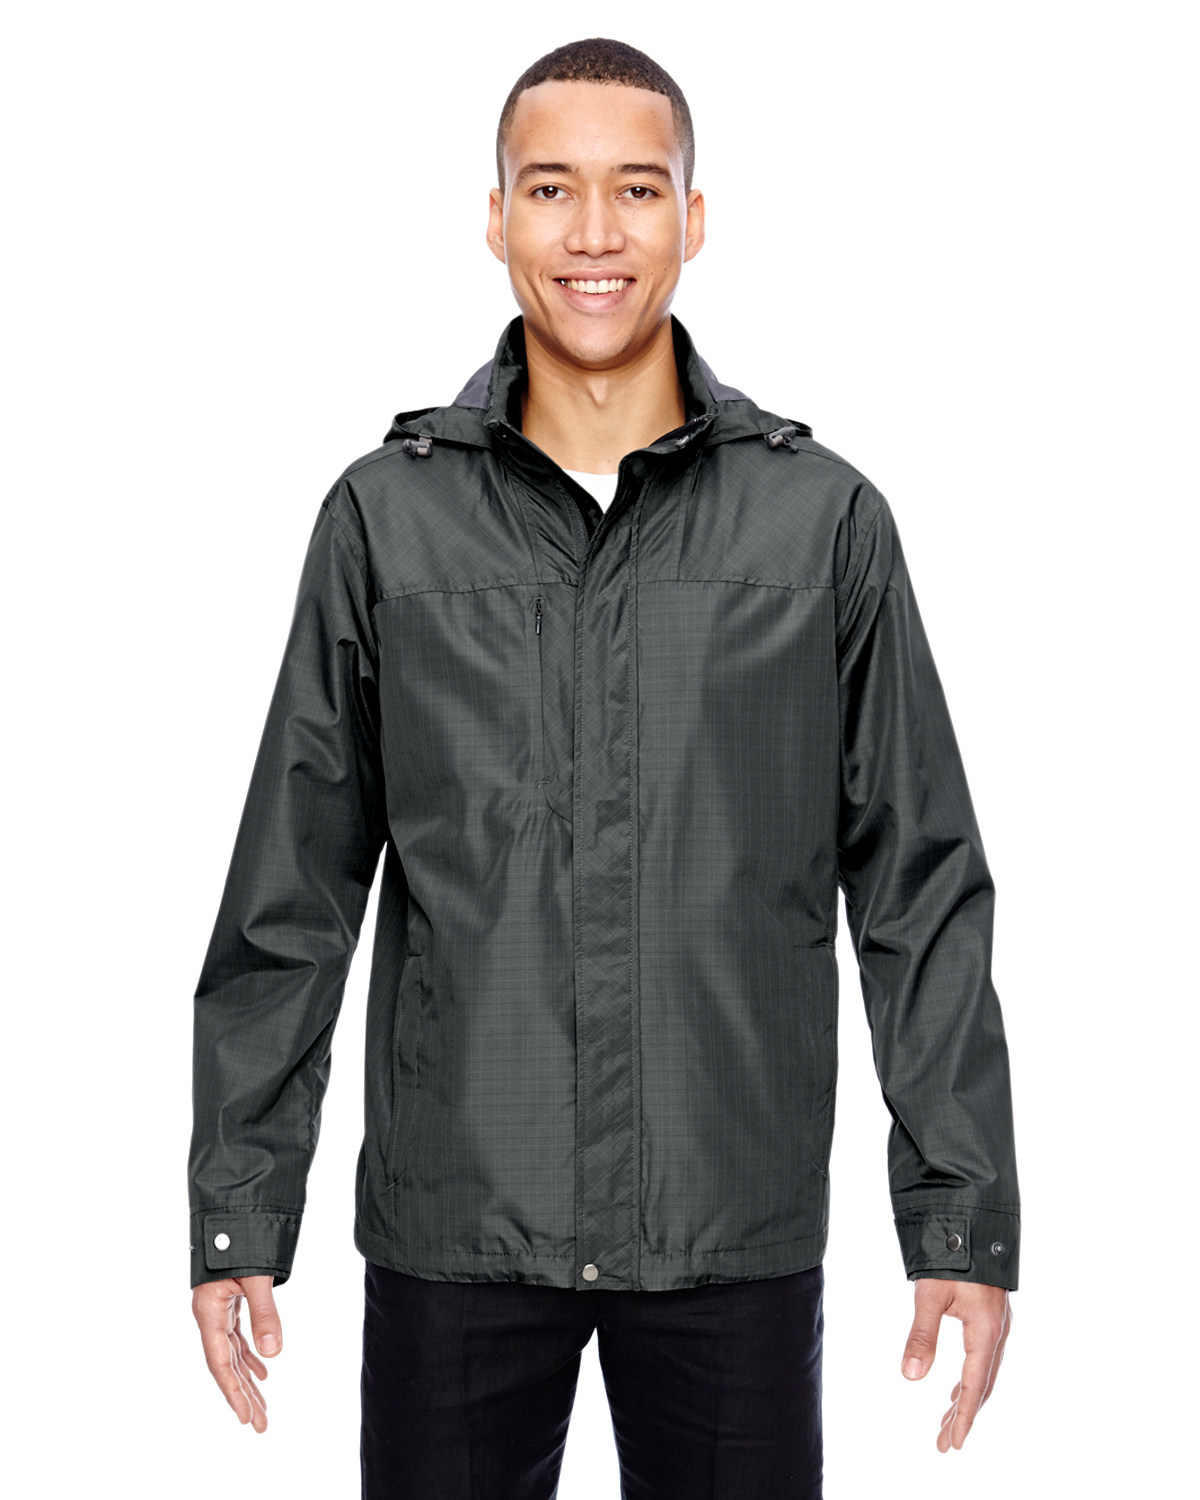 Men's Excursion Transcon Lightweight Jacket with Pattern